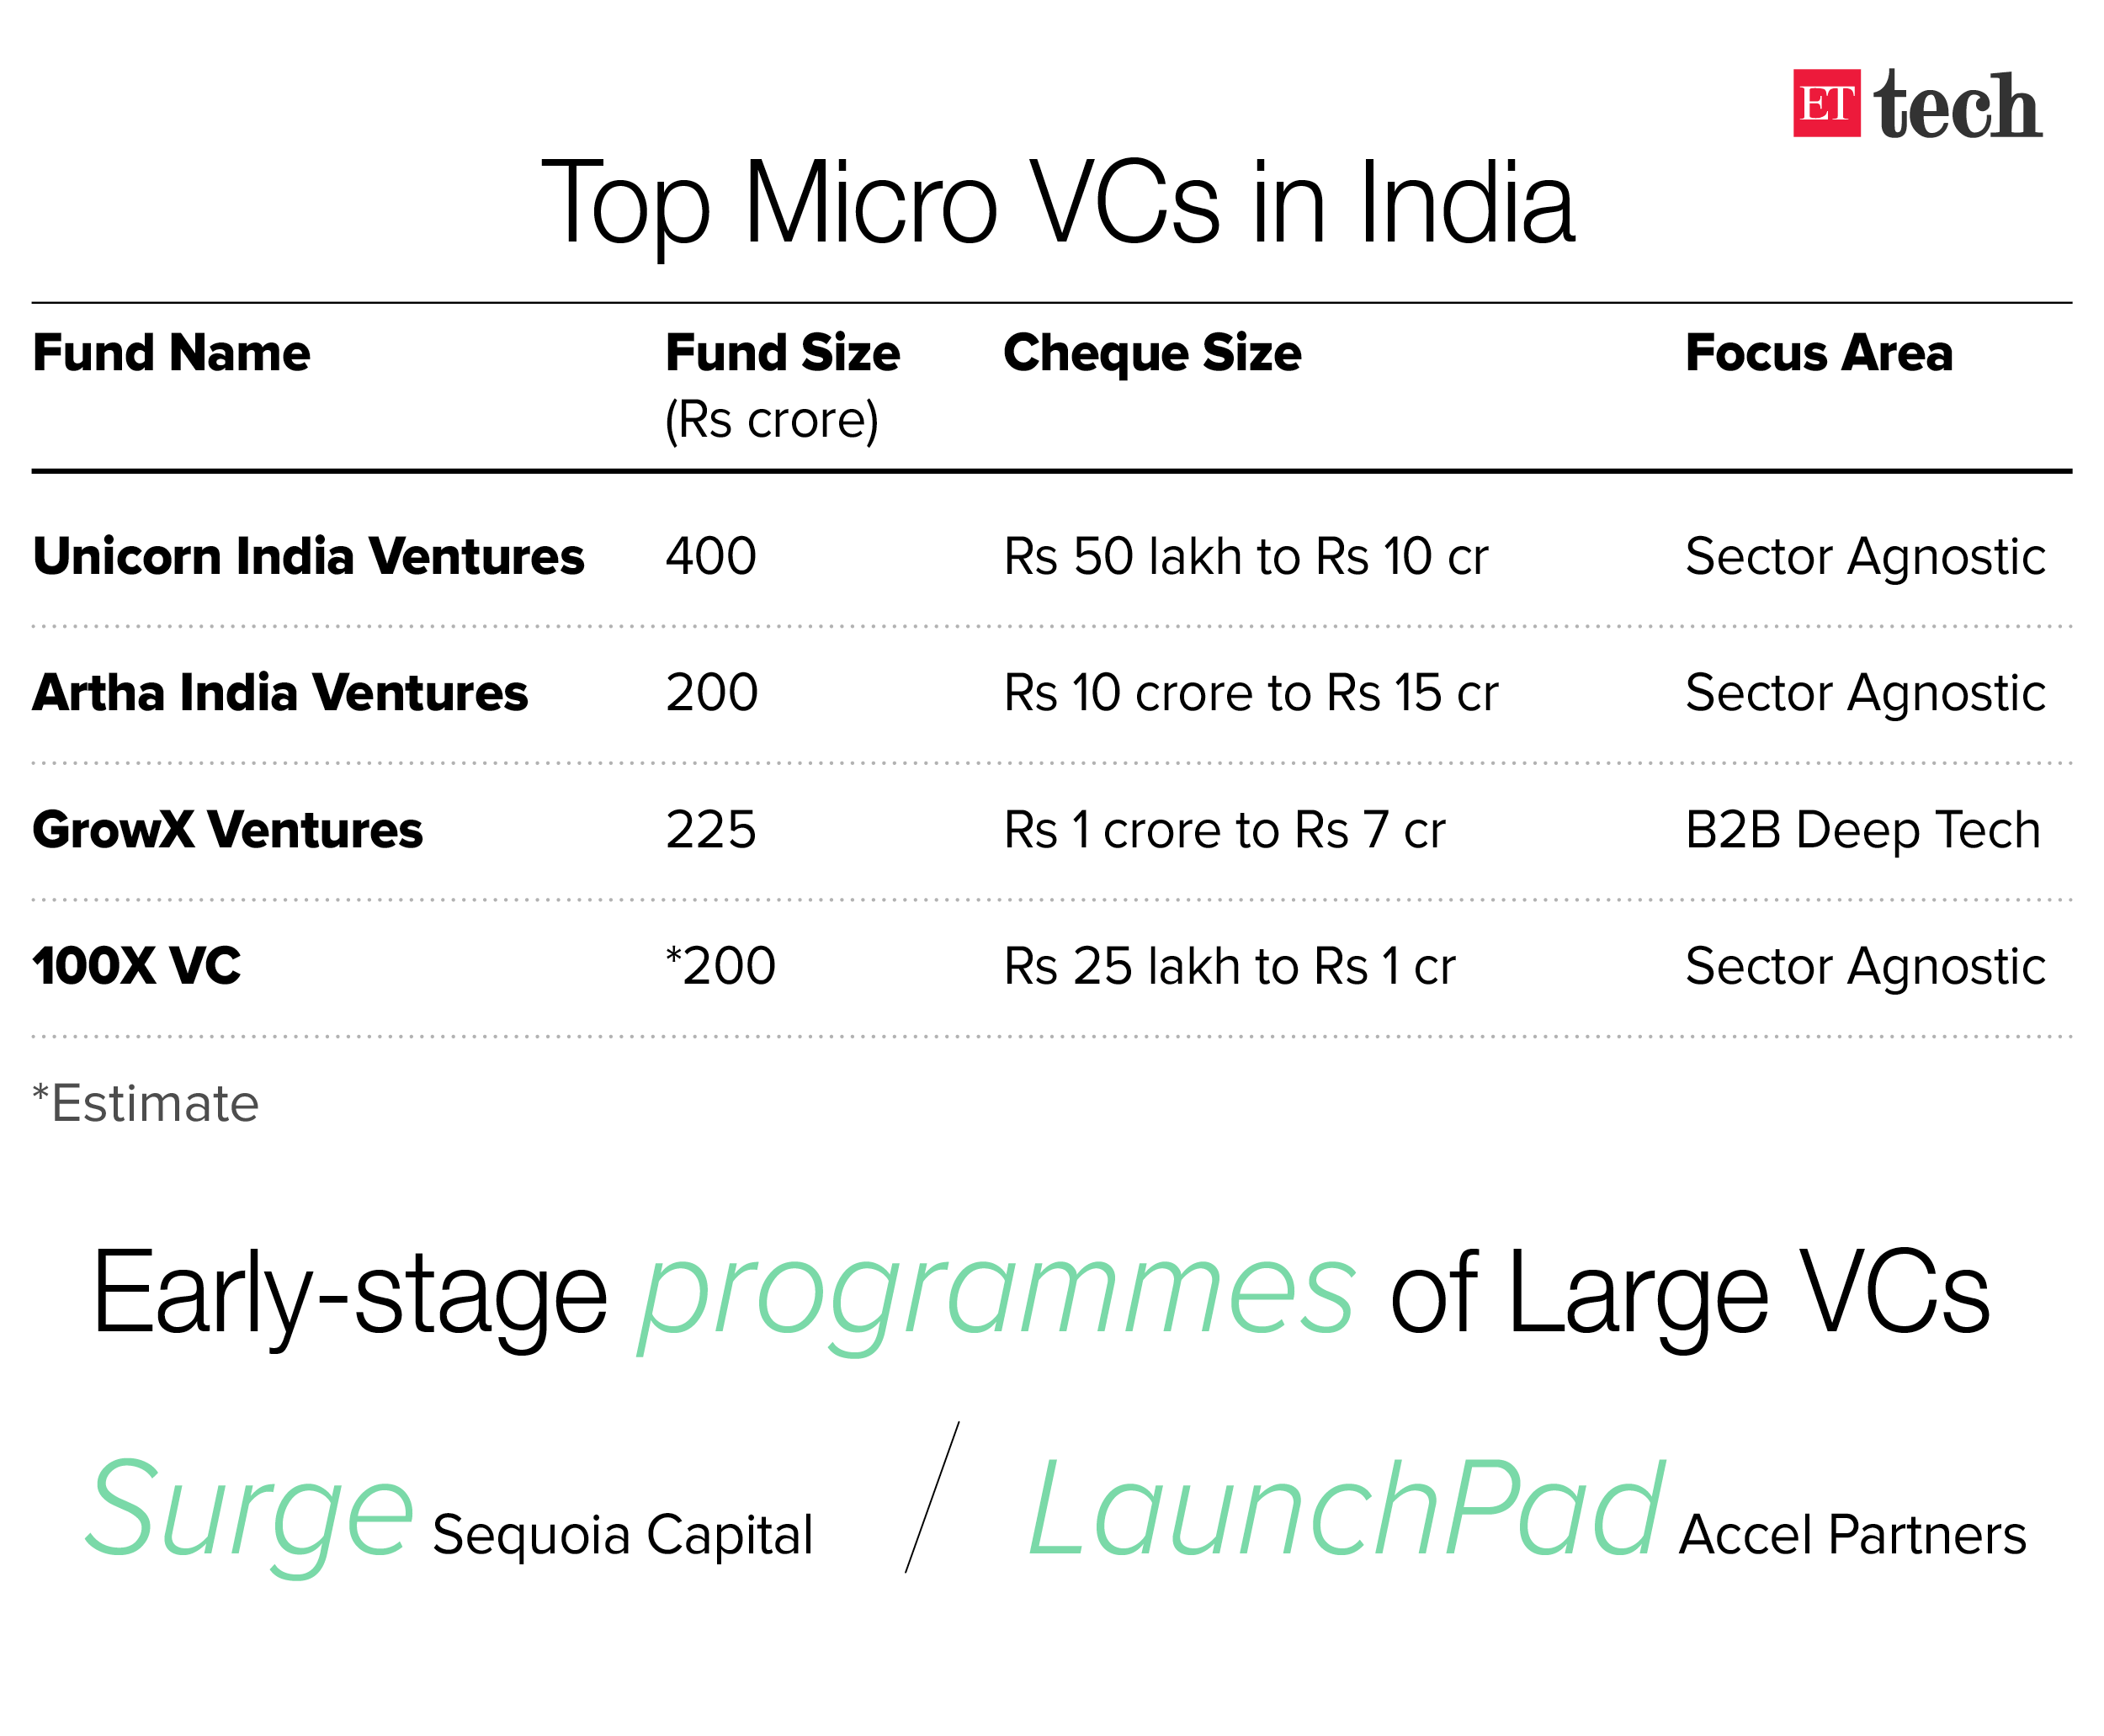 ETtech Top 5: Micro VCs under pressure, Amazon's seller insurance, Ola's scooter bet & more